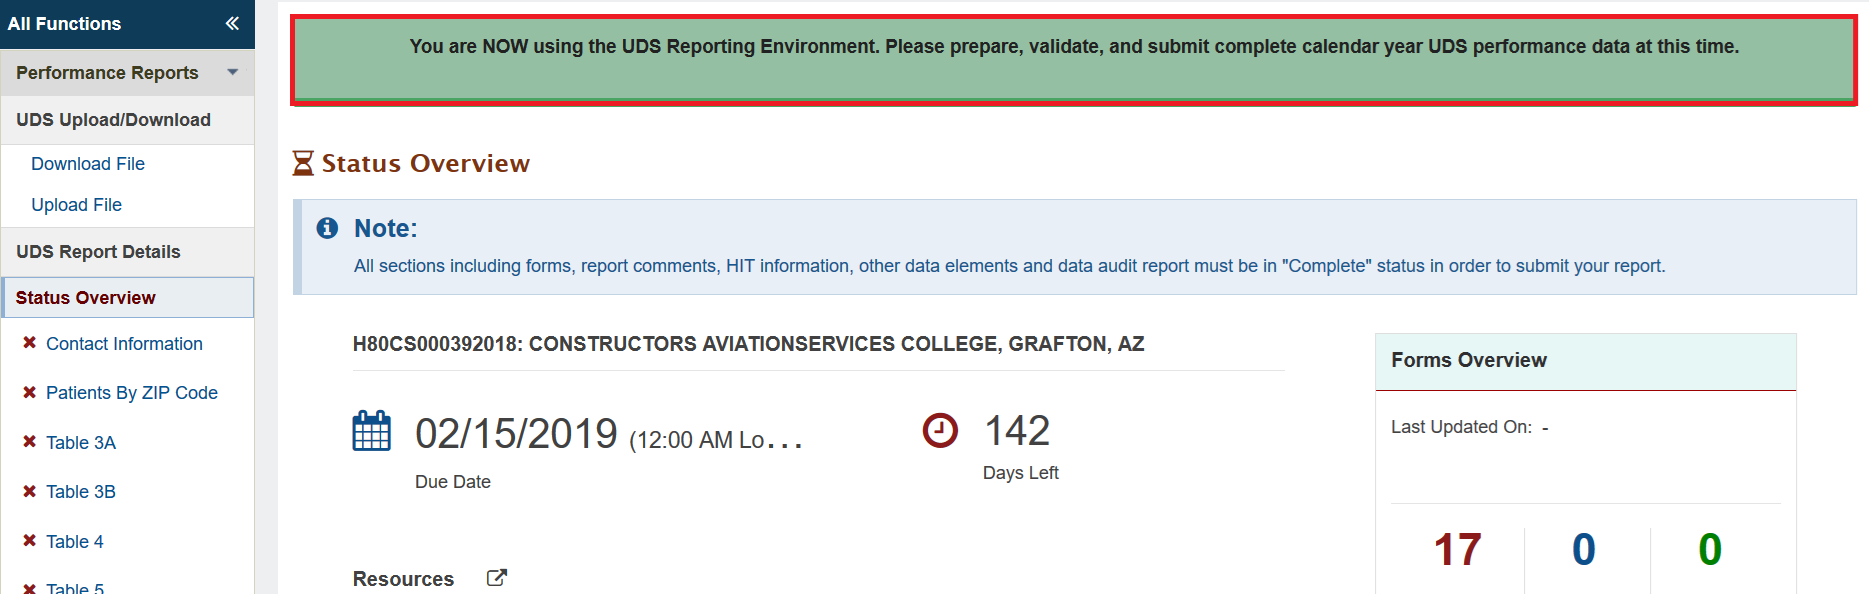 Screenshot of Main UDS reporting environment message on top of page